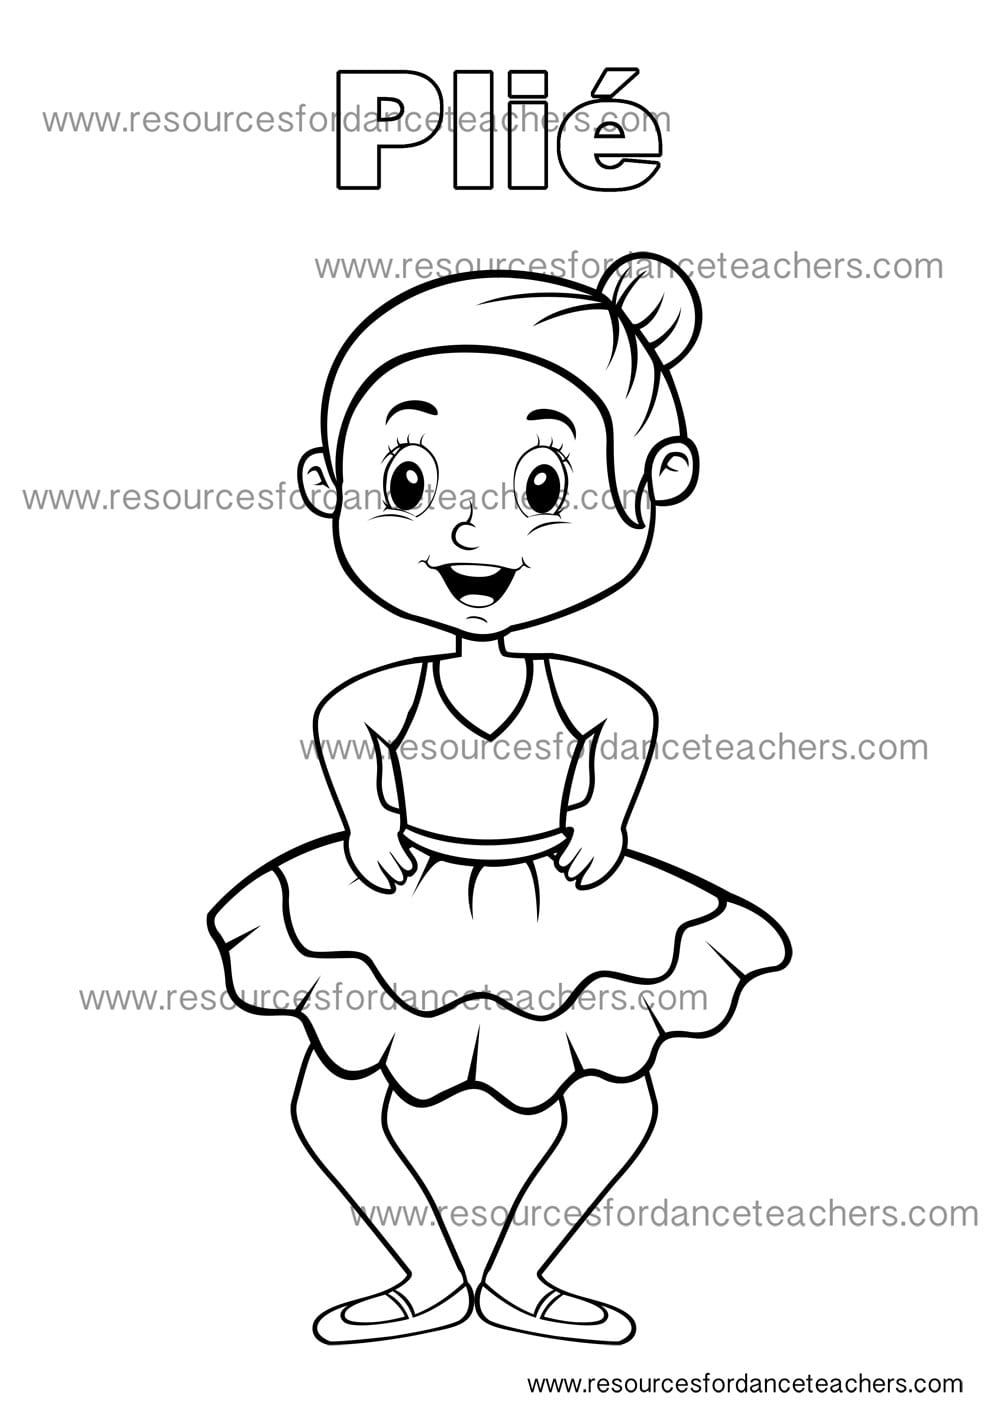 Preschool dance colouring sheets